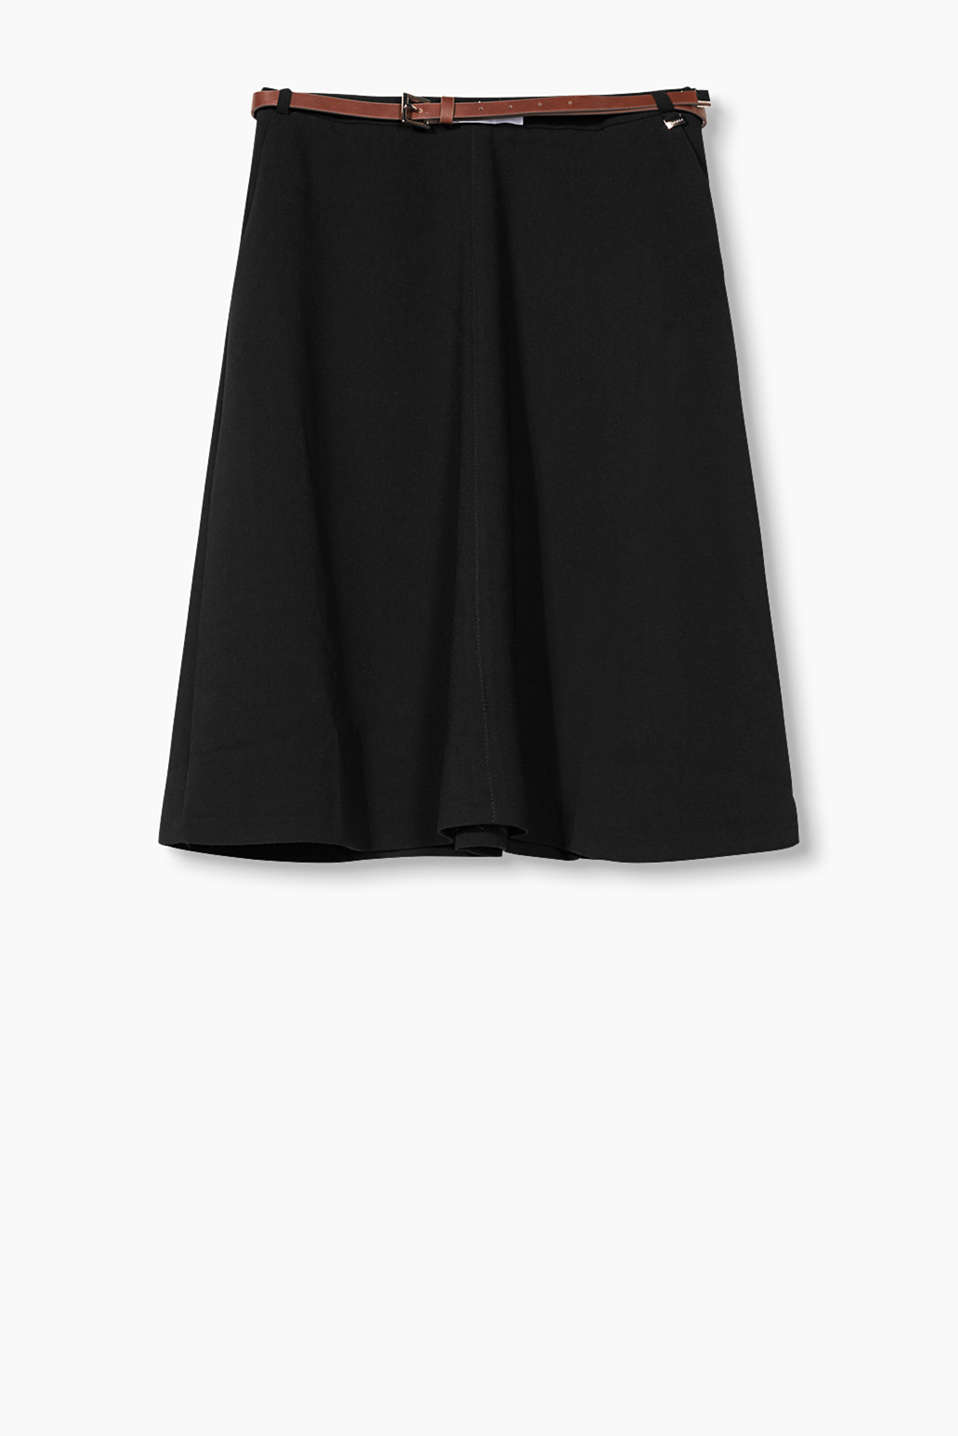 Swinging A-line skirt made of stretchy crepe with side pockets and an imitation leather belt